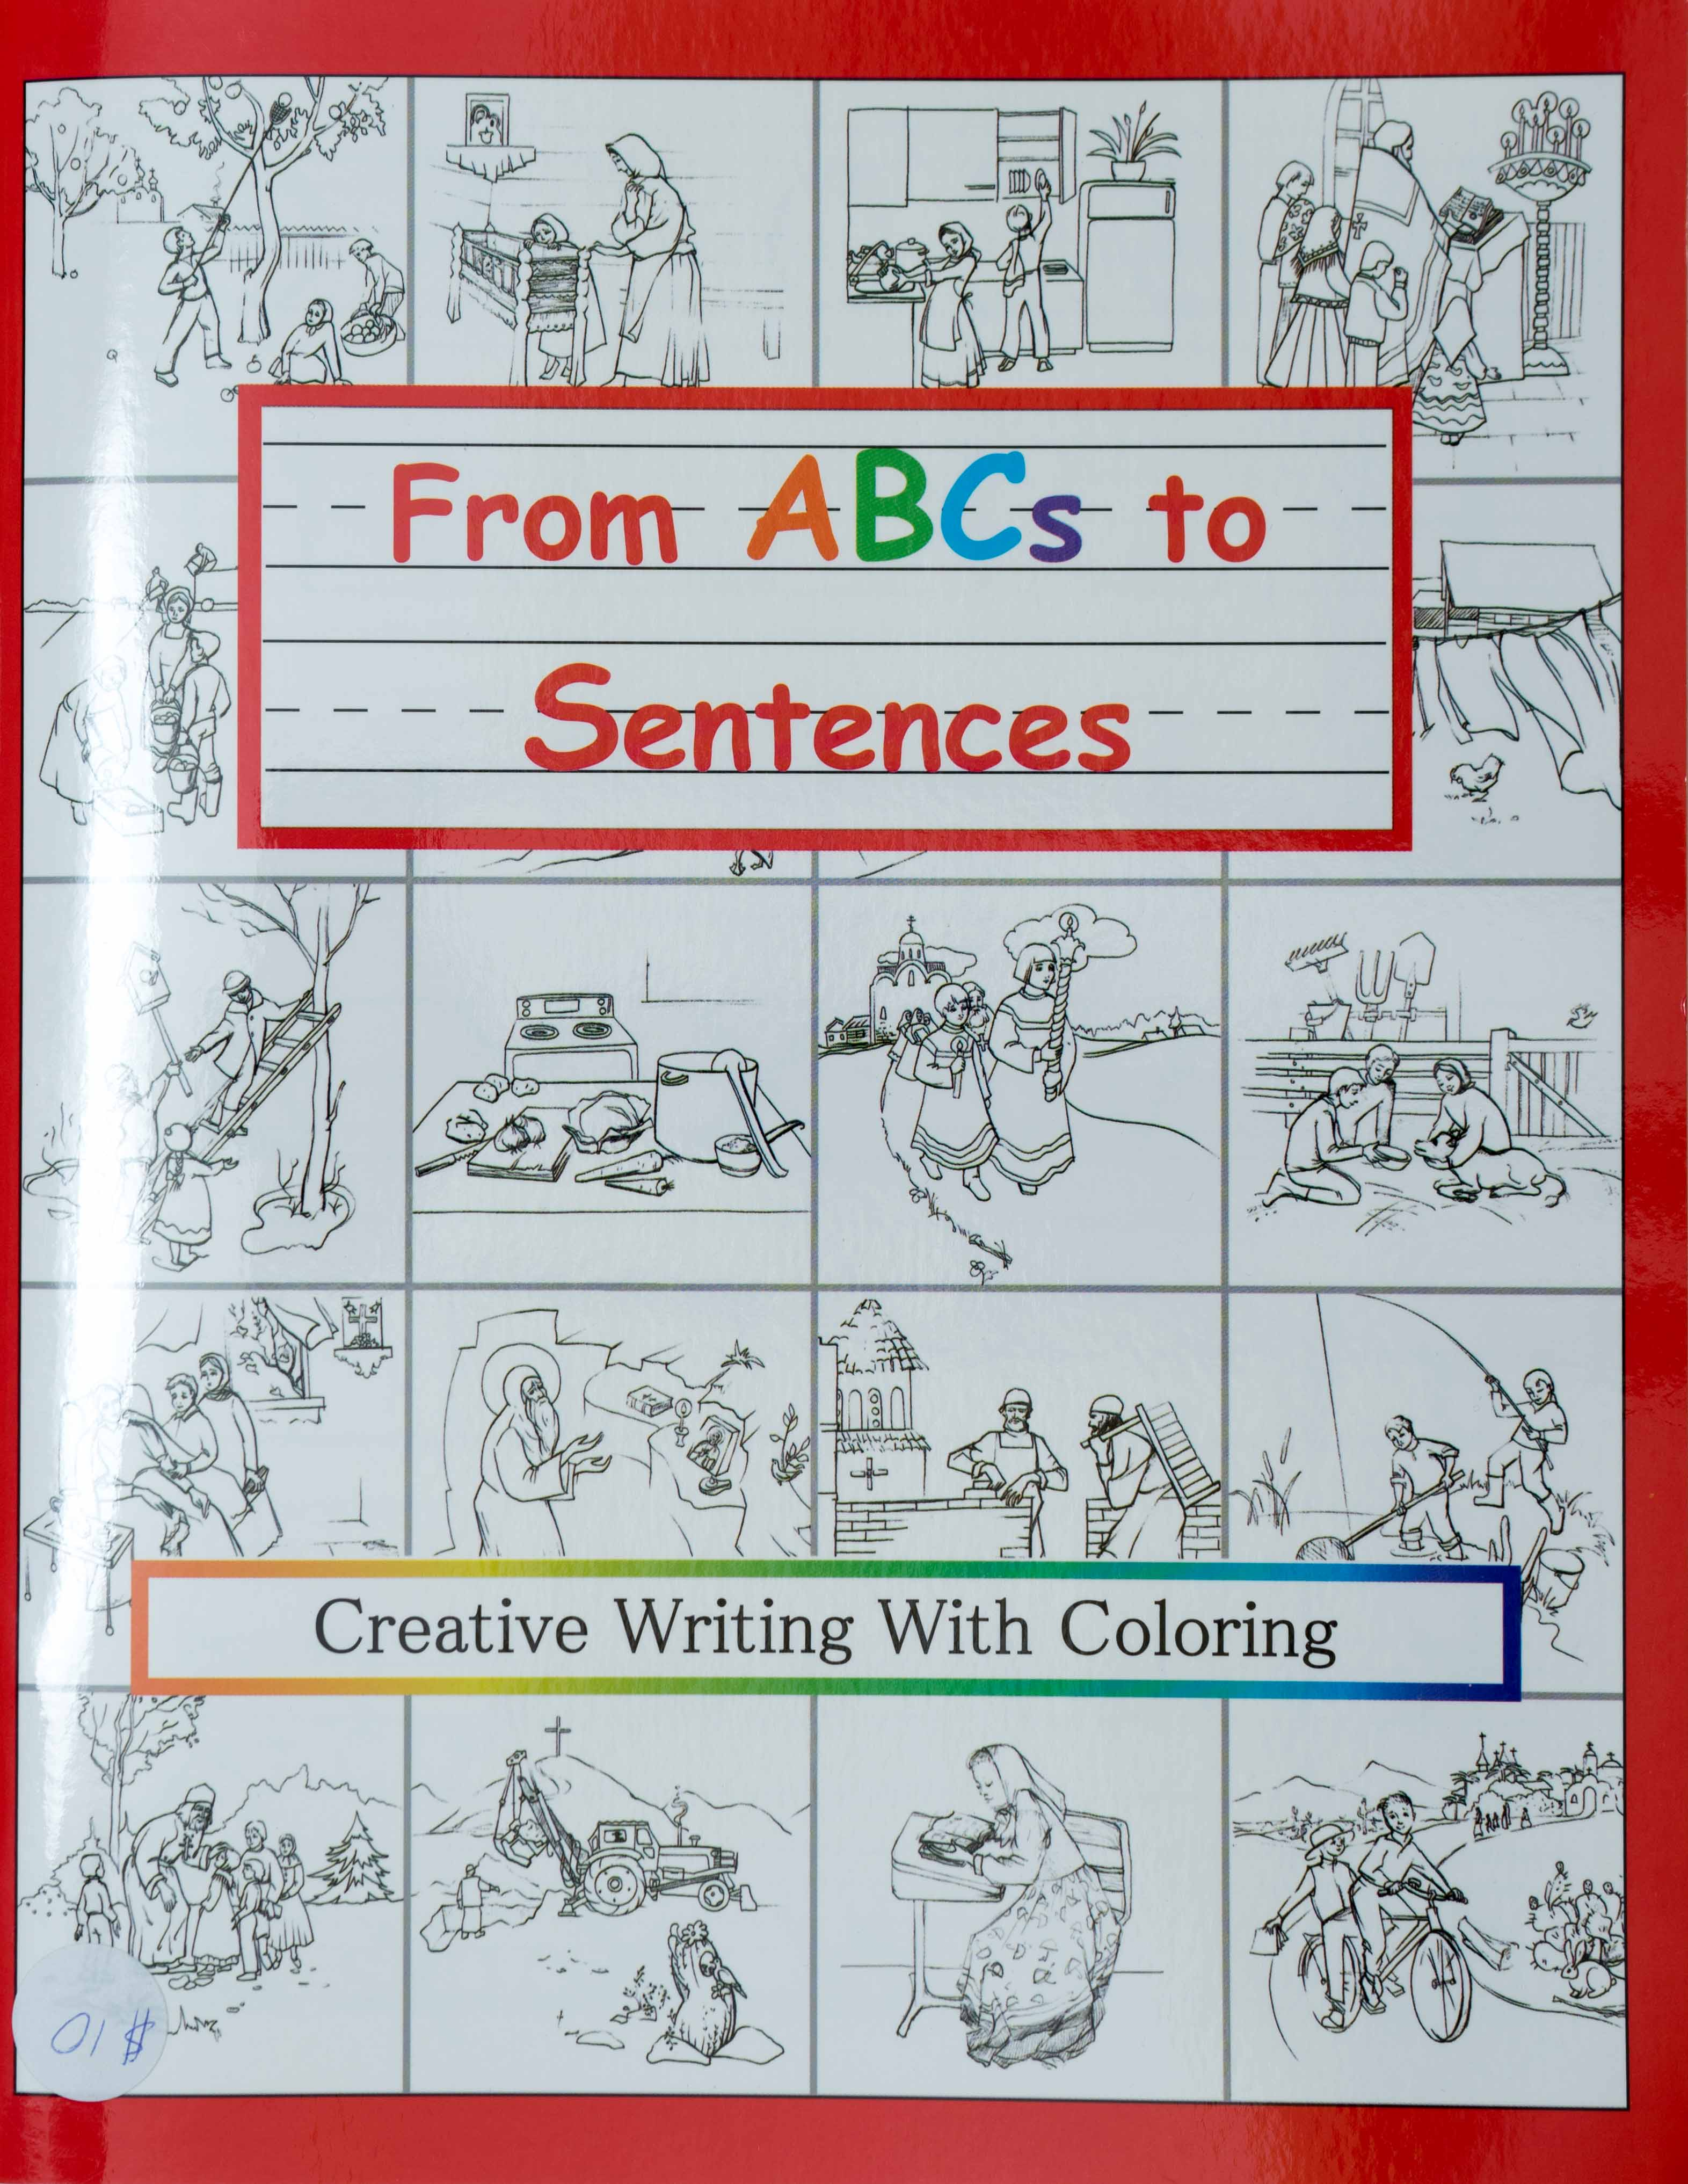 From ABCs to Sentences: Creative Writing with Colouring